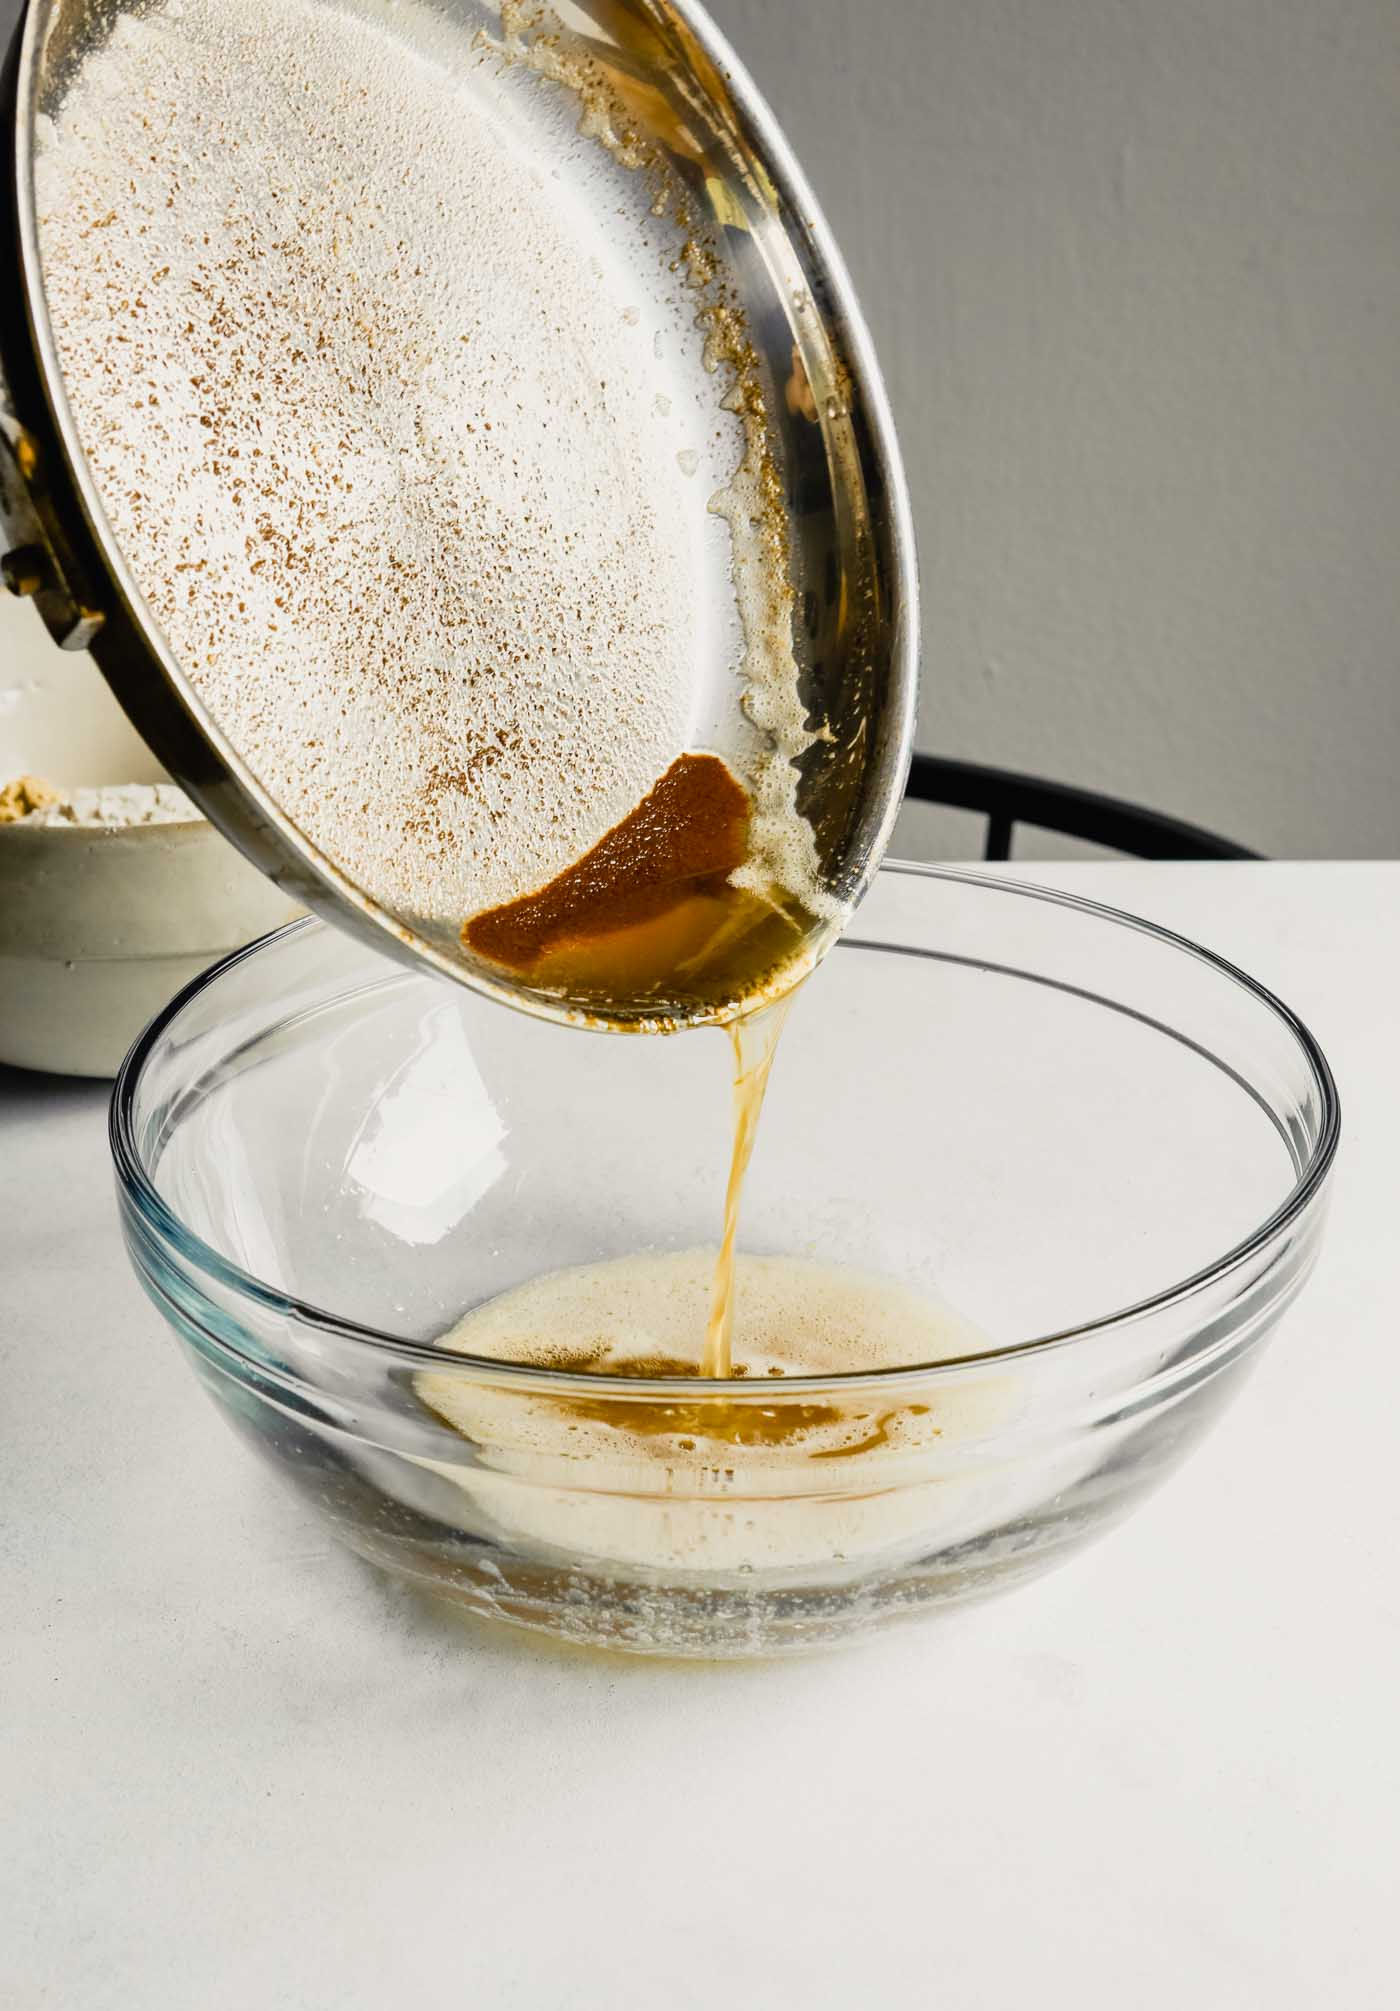 Photograph of brown butter being poured into a large glass bowl